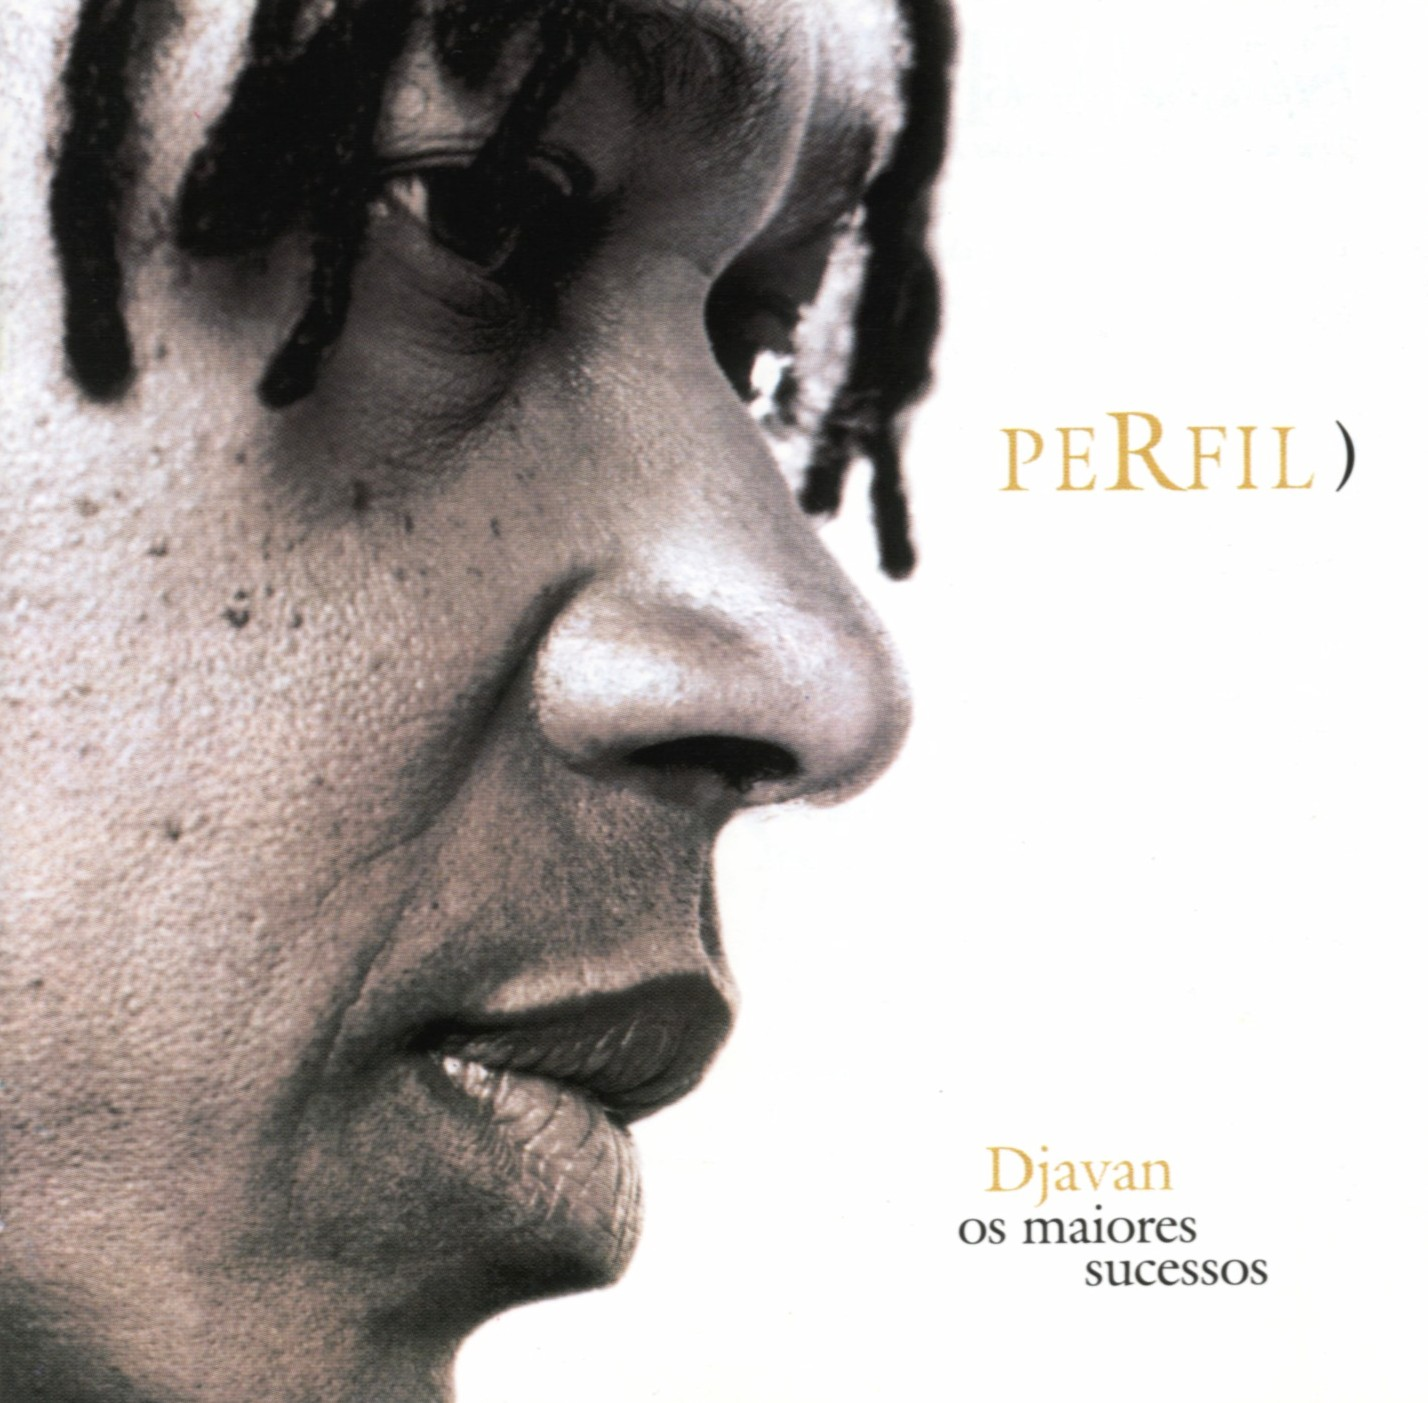 cd djavan perfil mp3